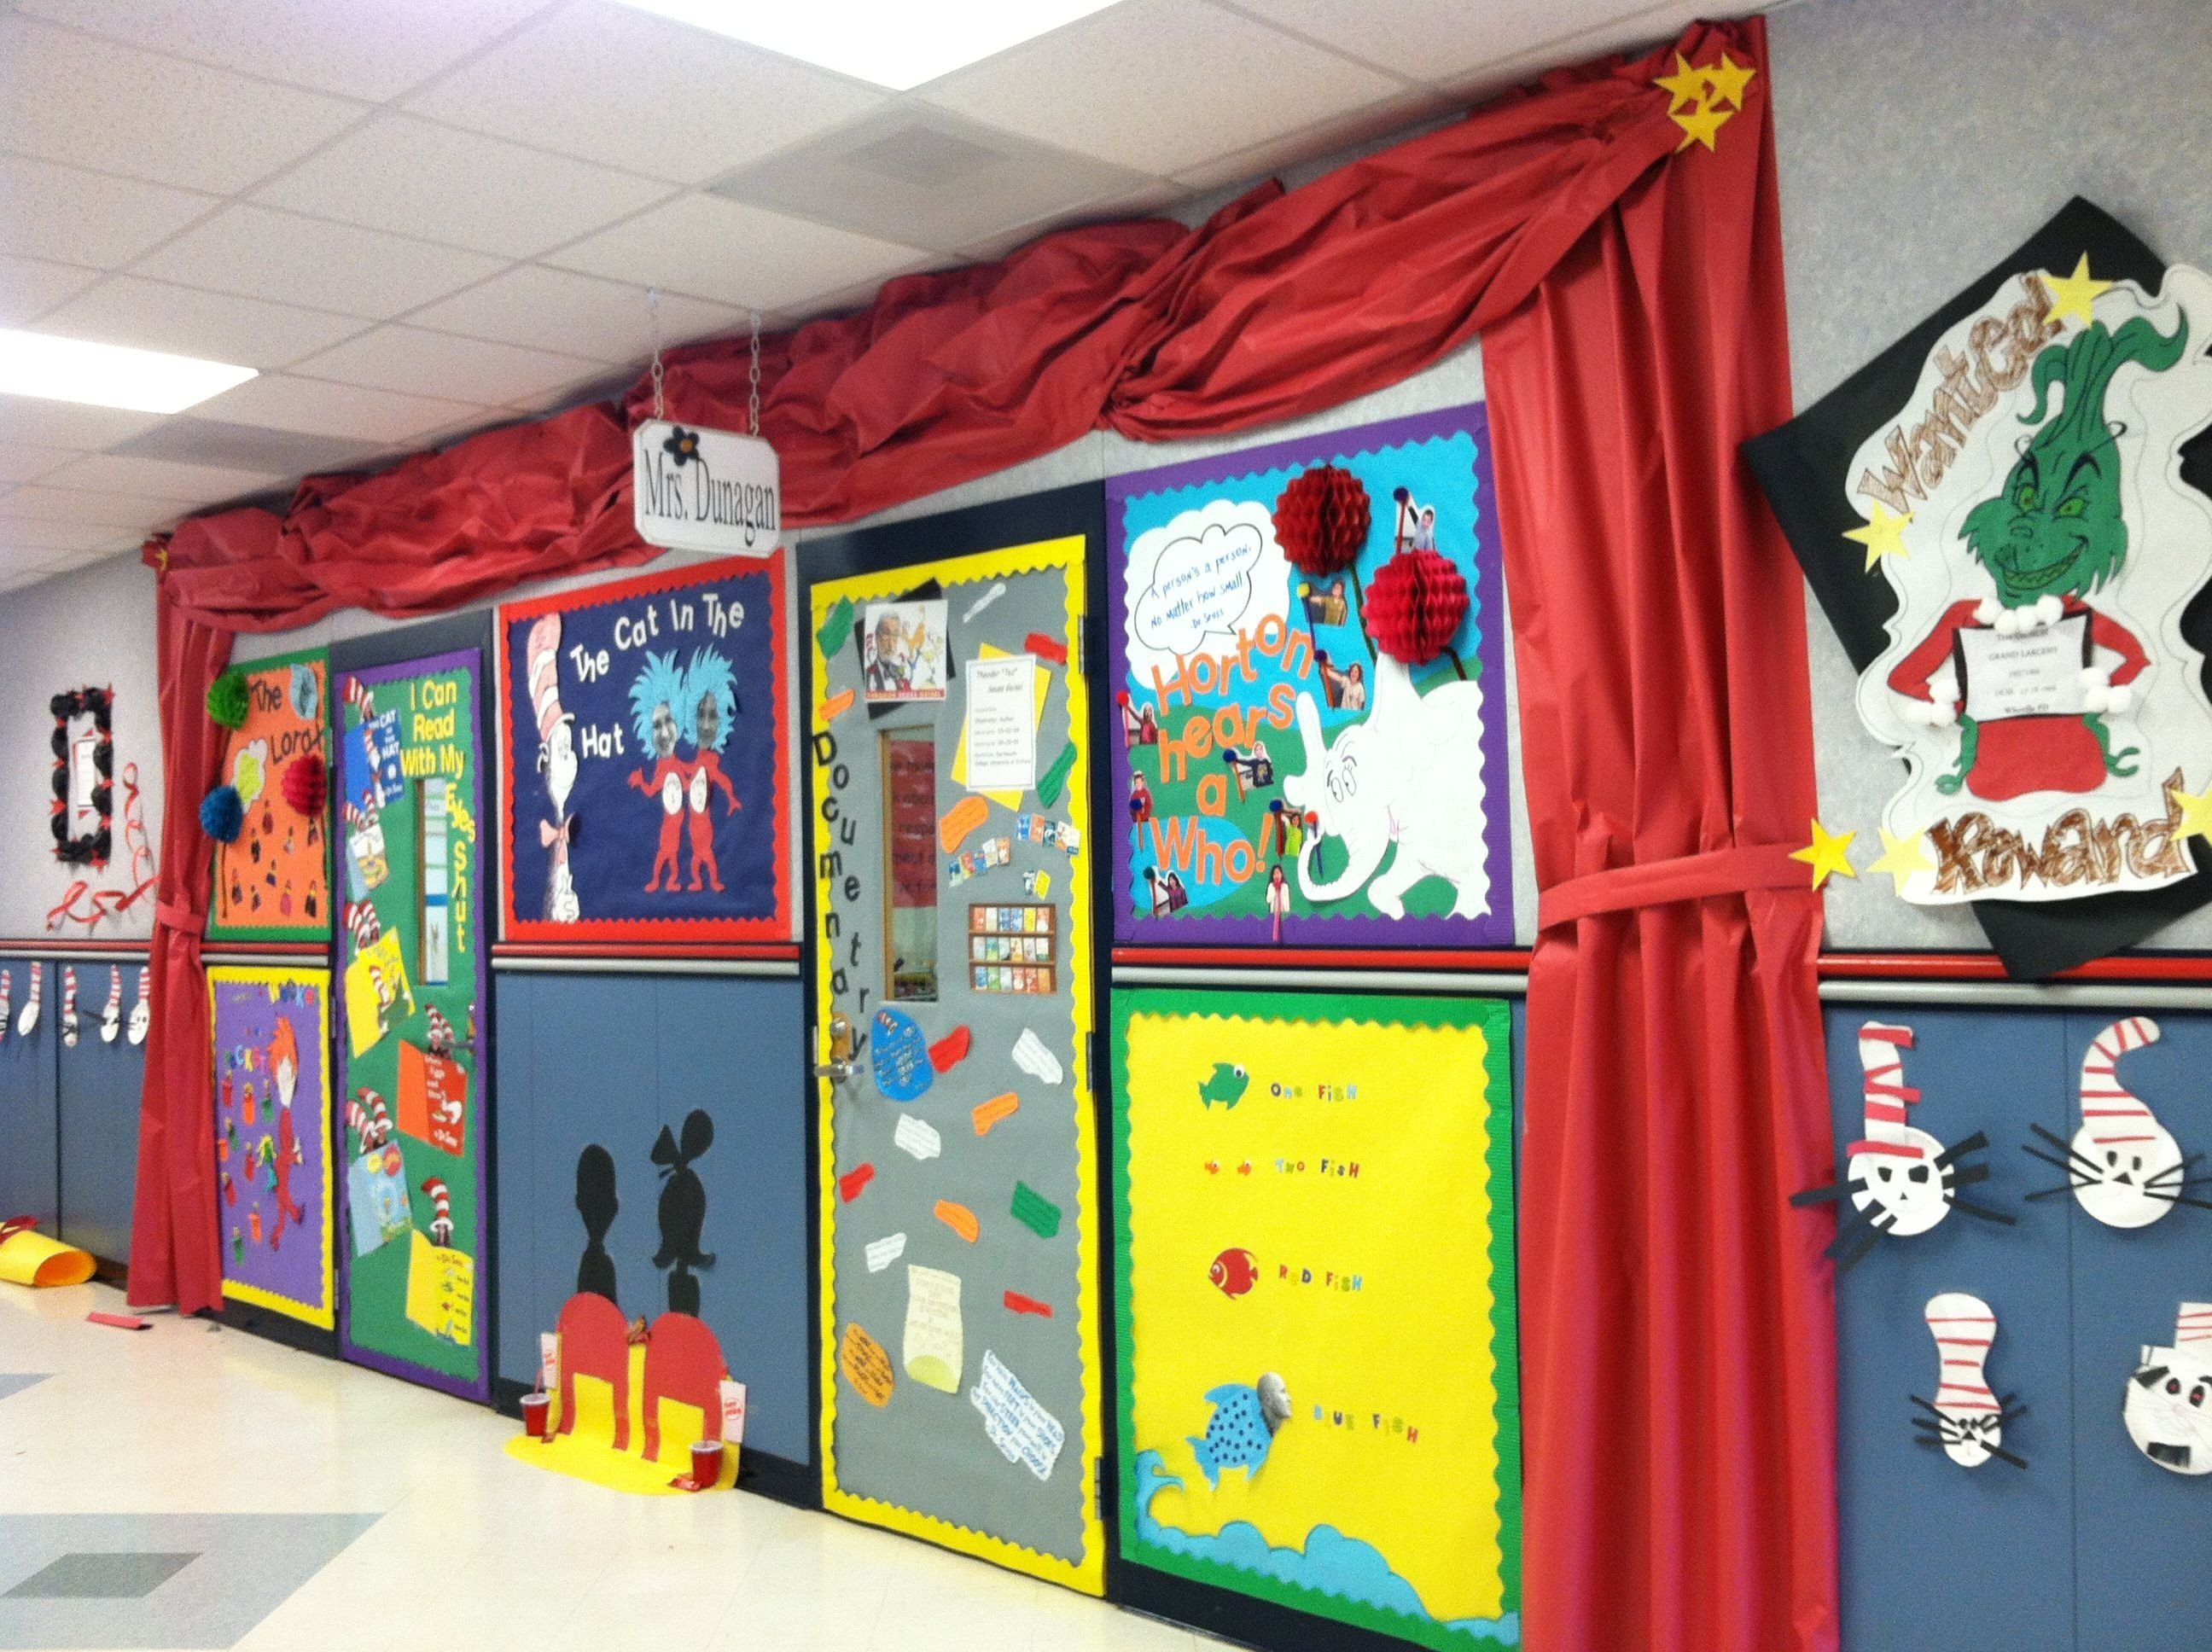 Dr Seuss Decoration Ideas Awesome Dr Seuss Door Decorating Contest Kidlets Class board decoration is very enjoyable Students take great pleasure in having their own work...